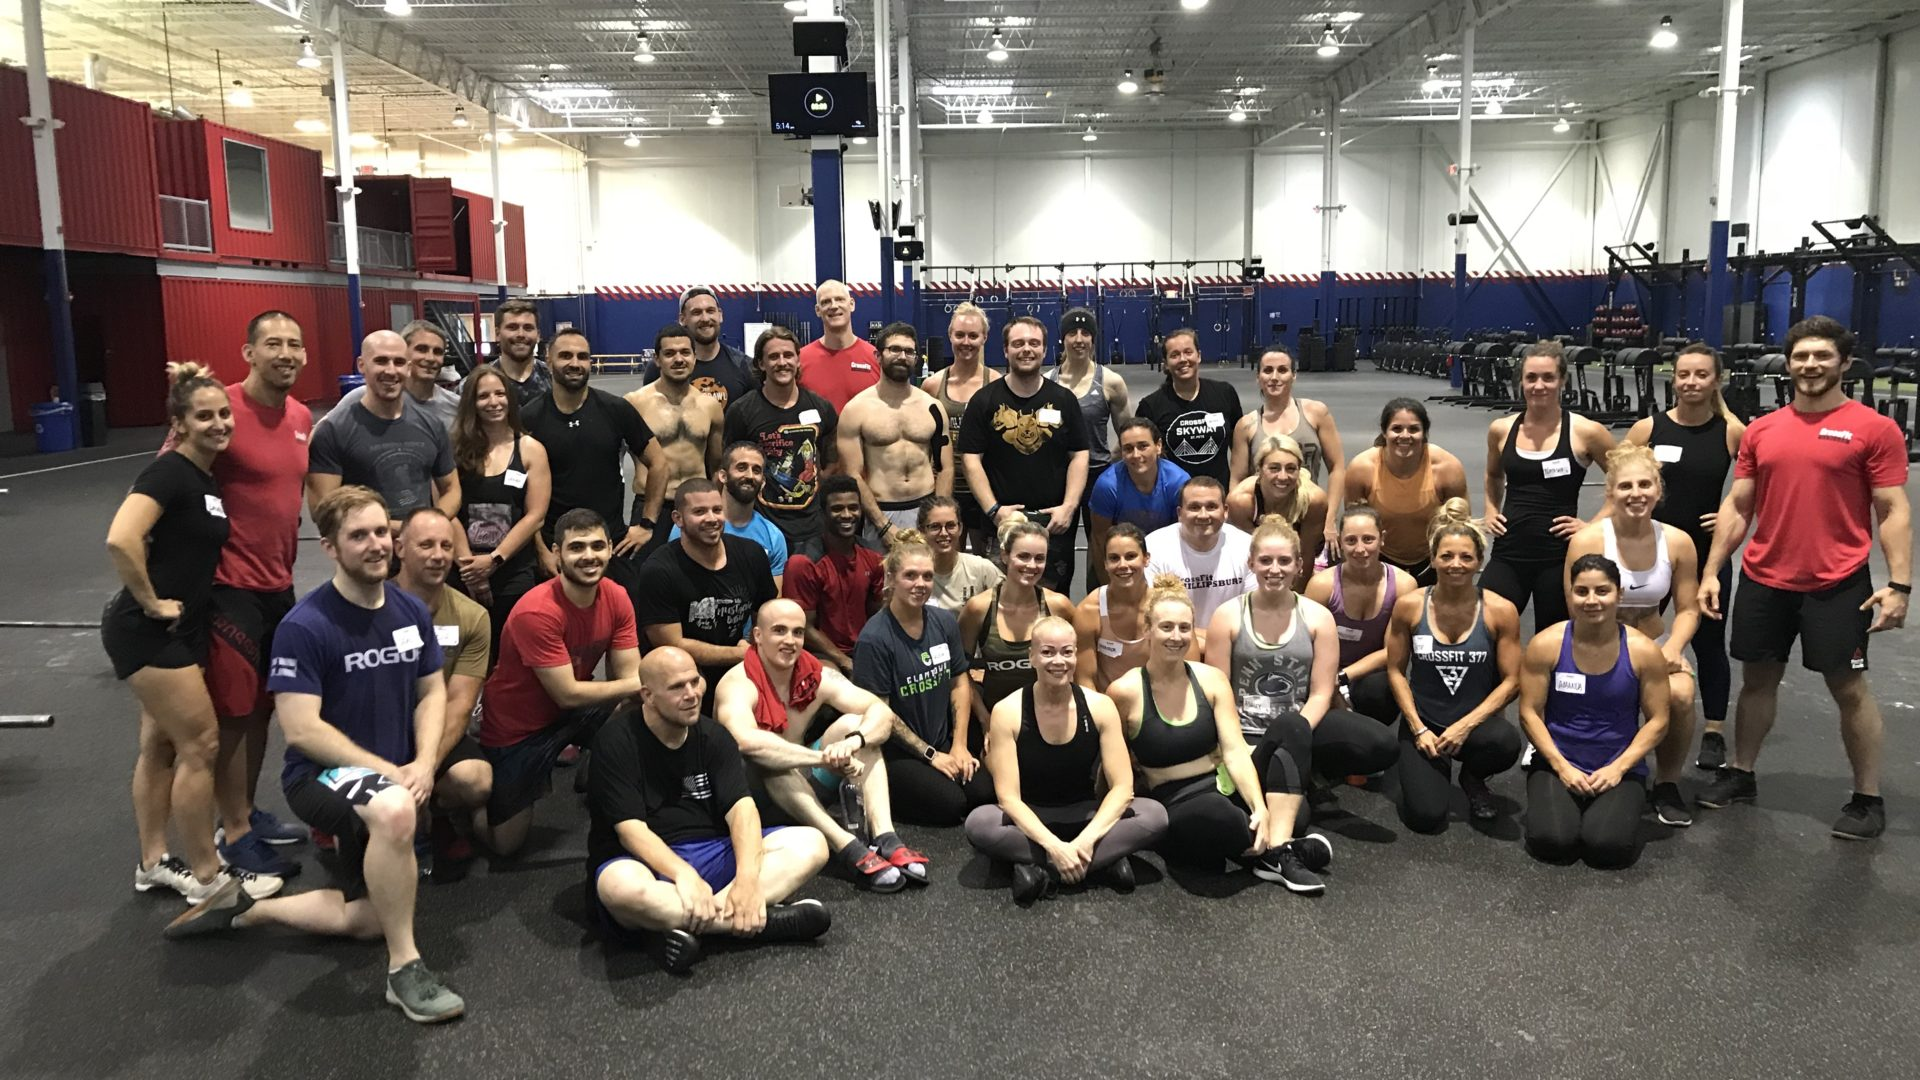 Crossfit college hill nc